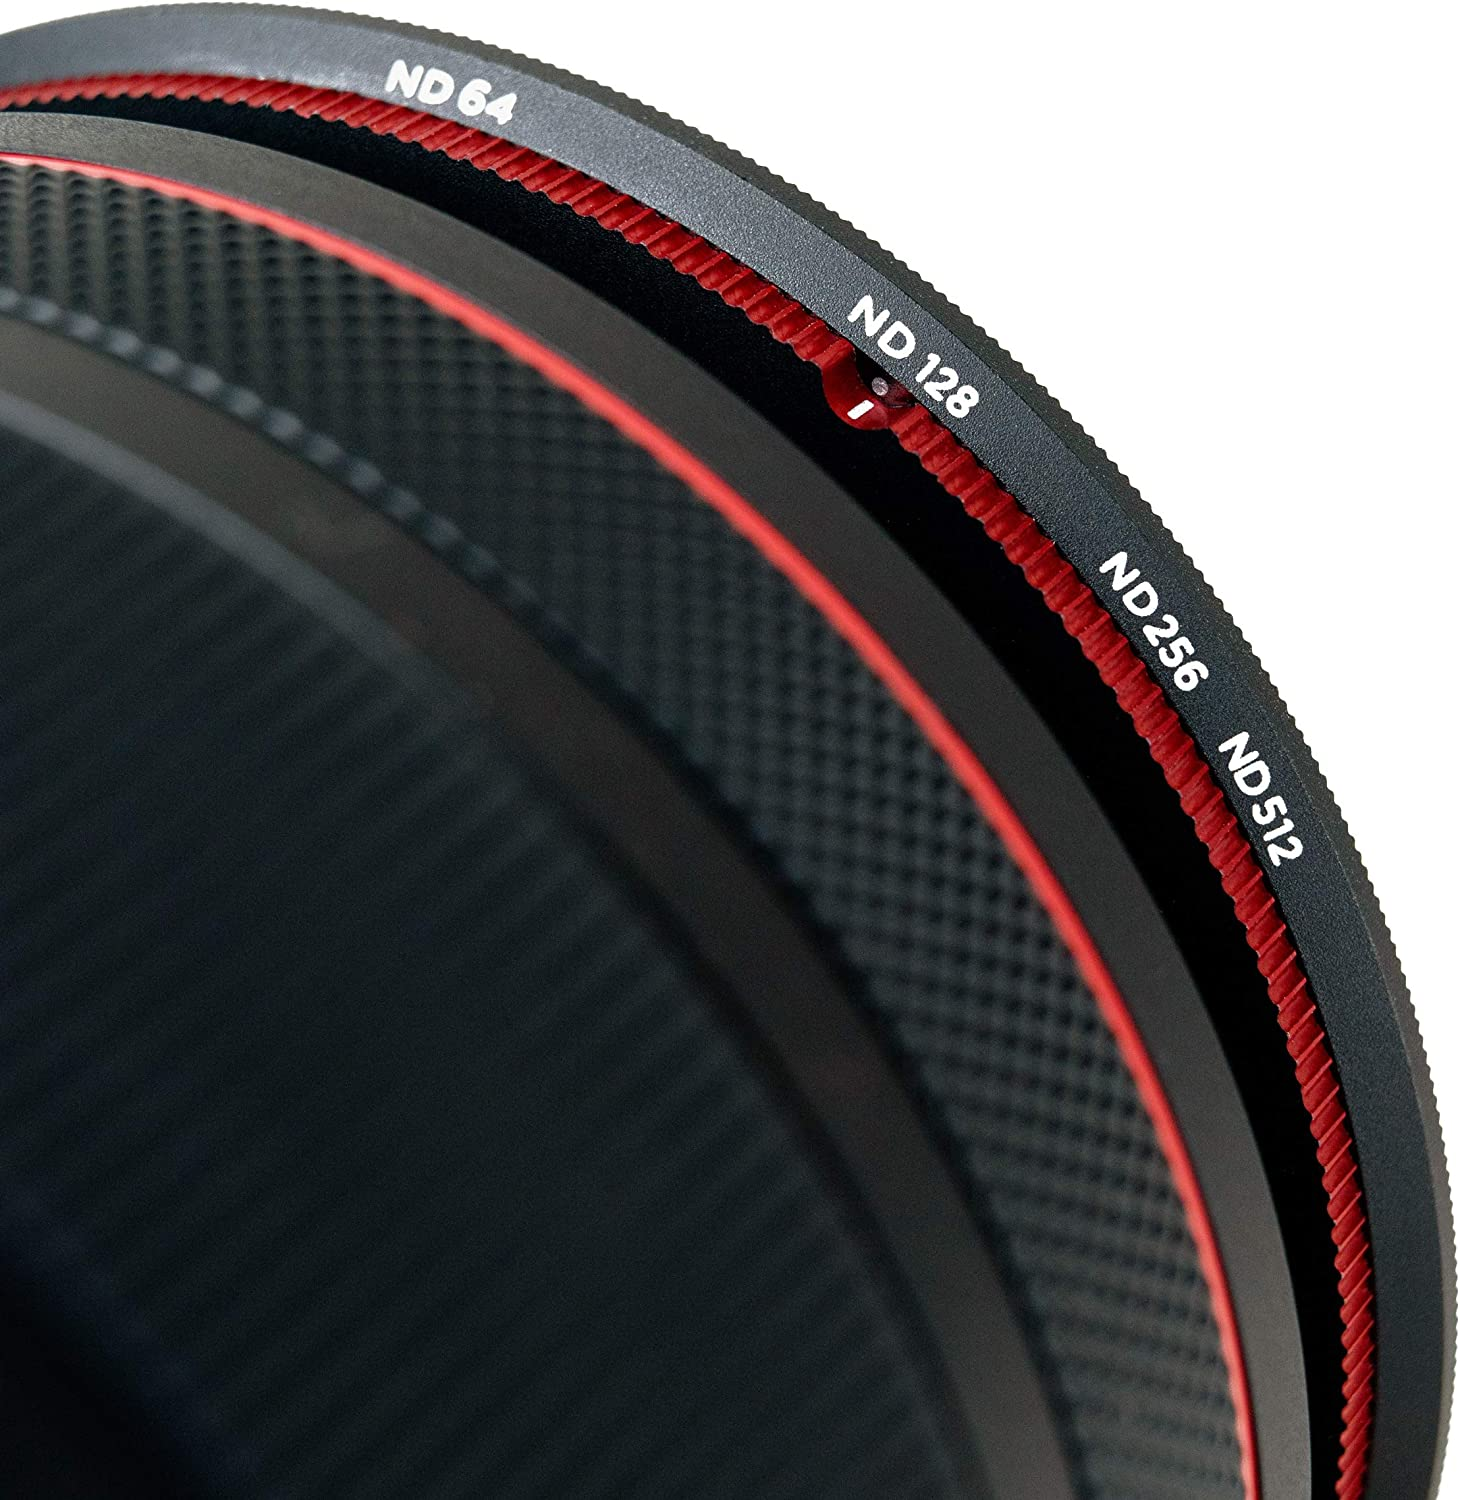 for Camera Lenses 2-5 Stops Moment 67mm Variable ND Filter